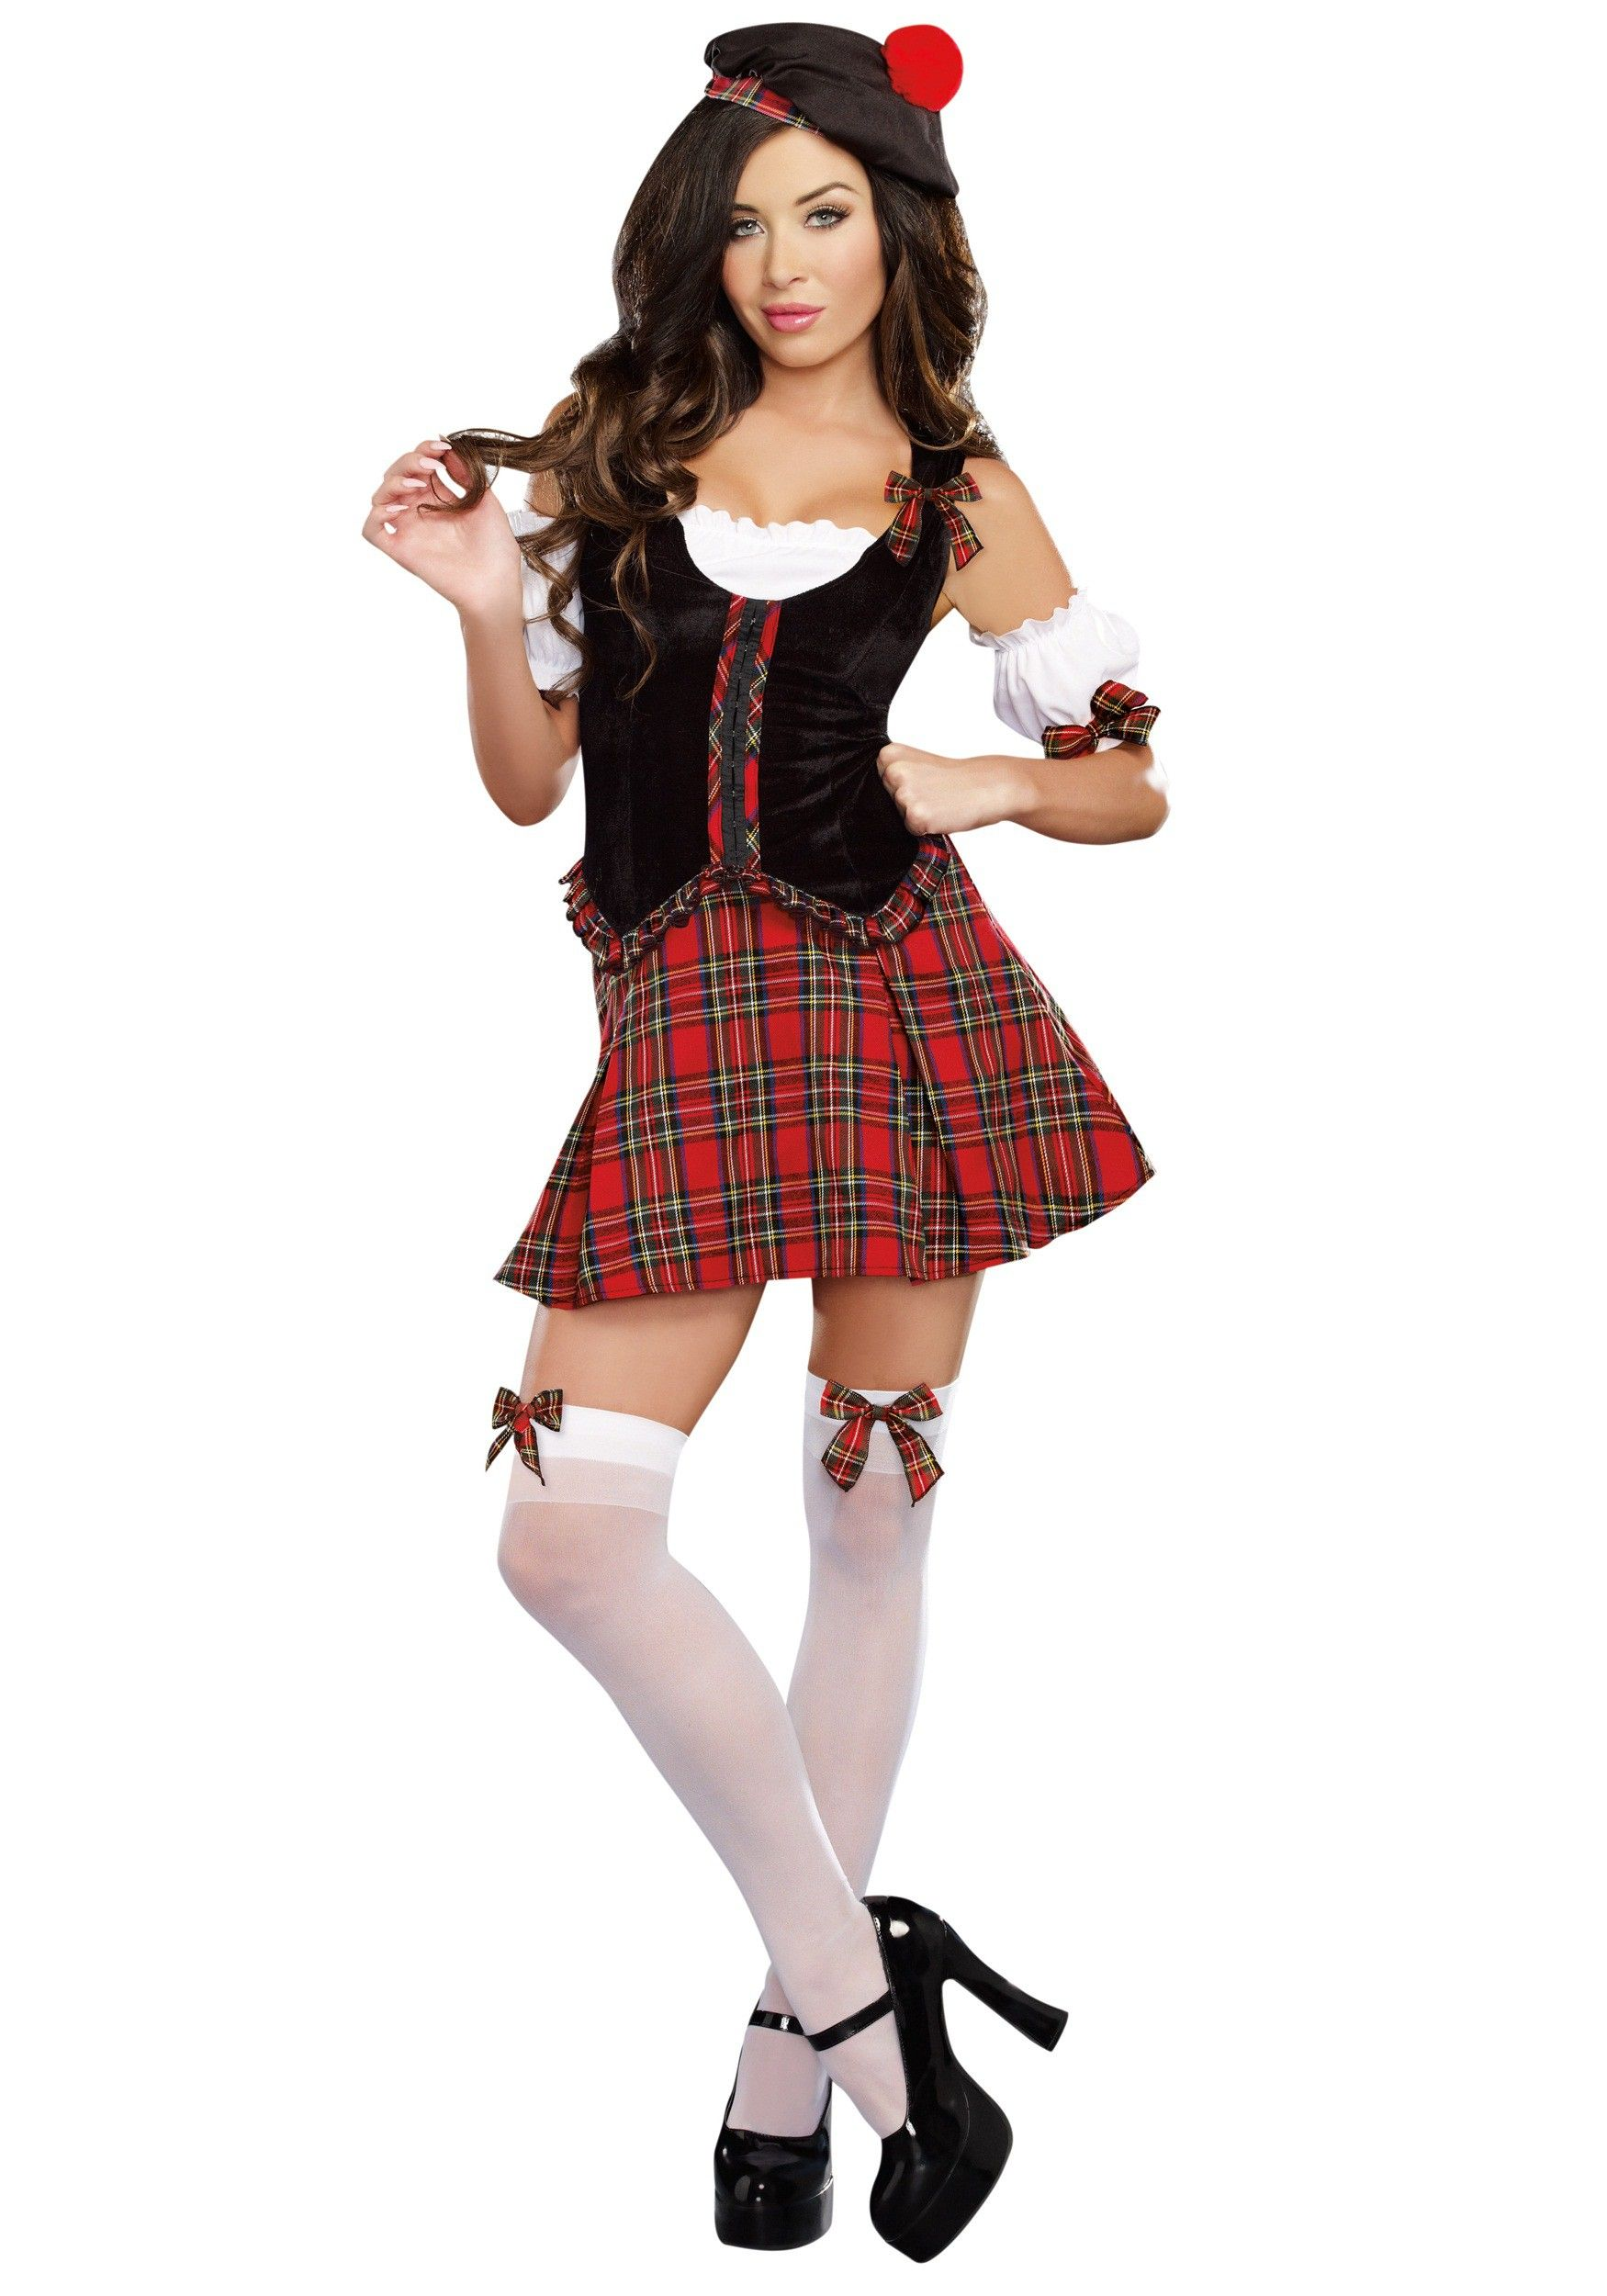 scotty hotty womens scottish costume - Scottish Girl Halloween Costume